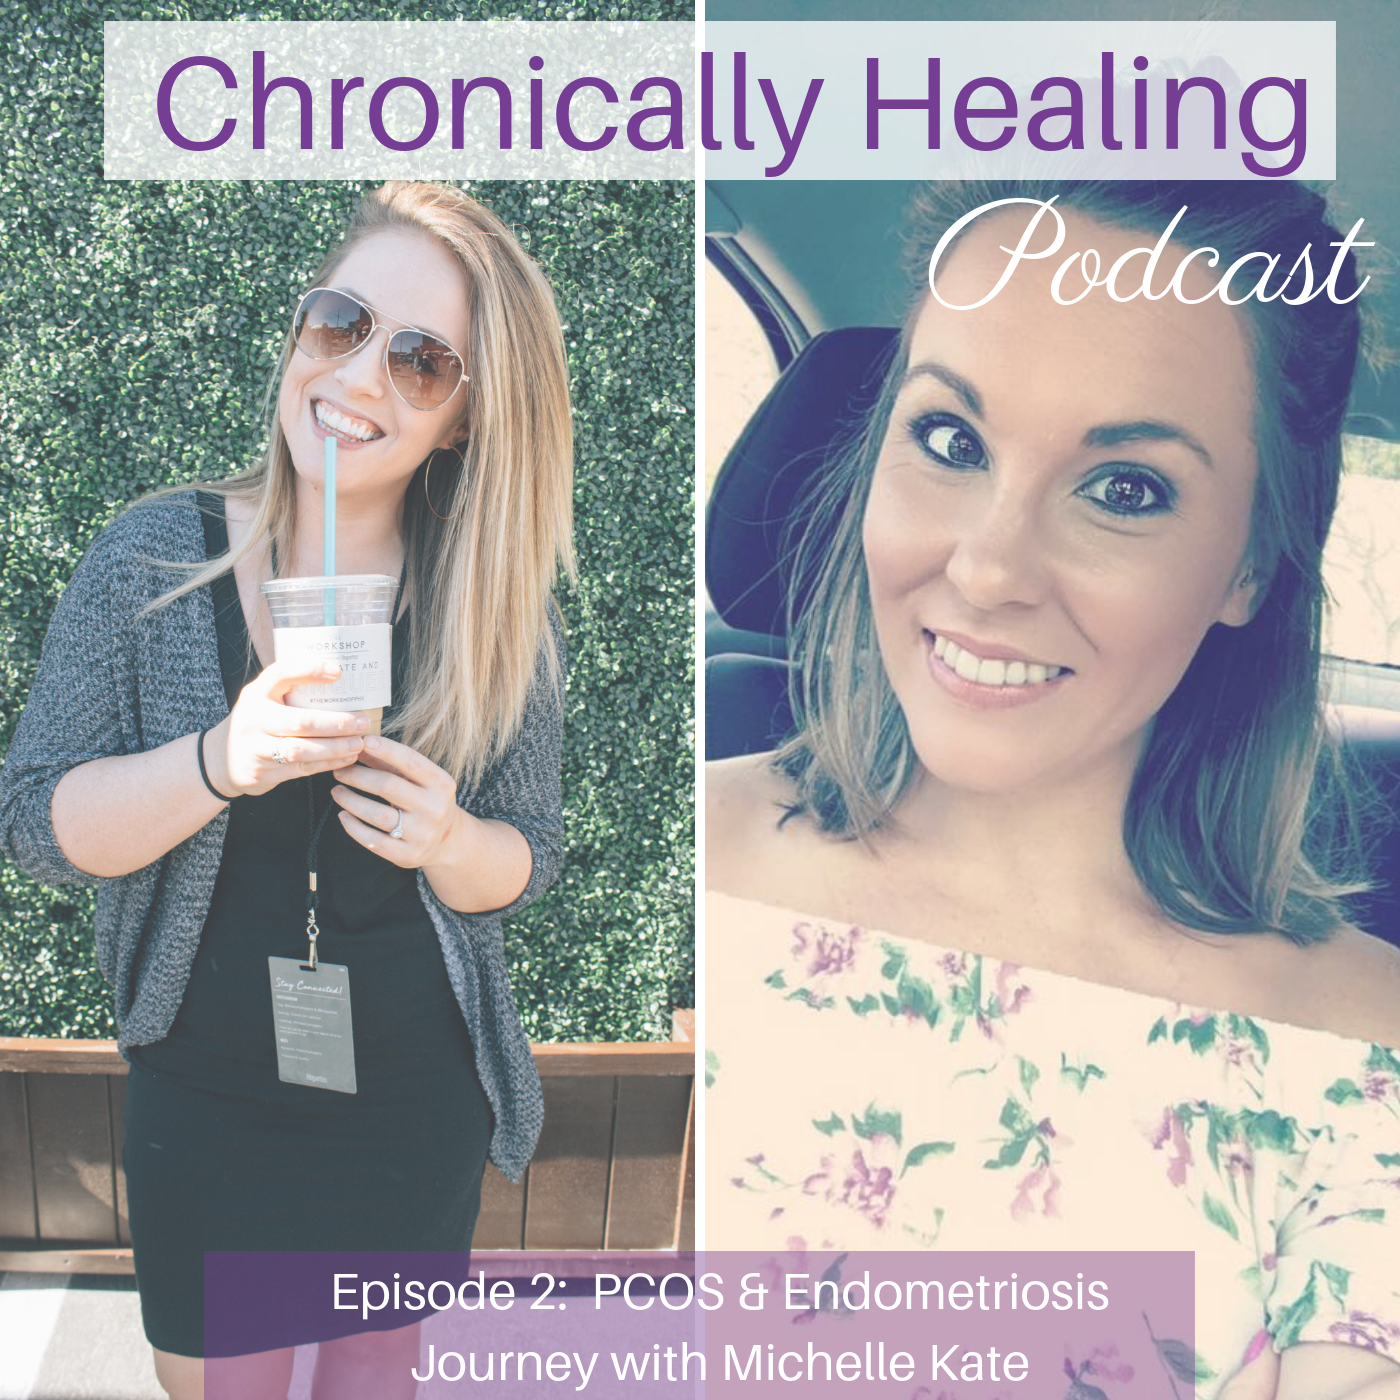 Chronically Healing Episode 02: PCOS & Endometriosis with Michelle Kate